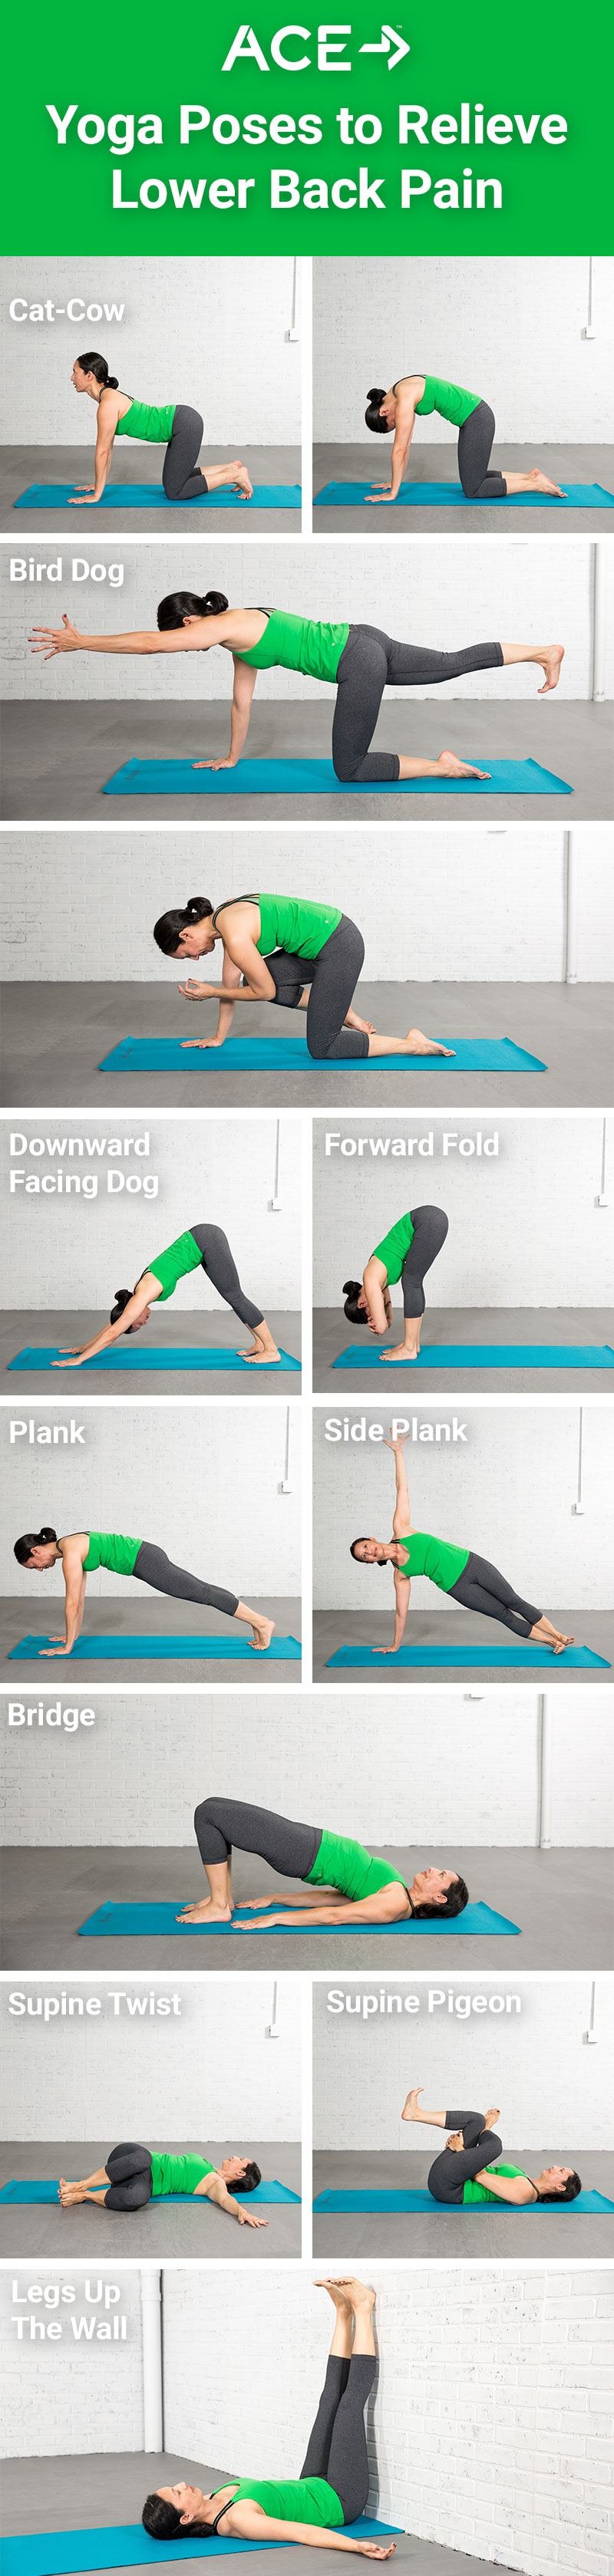 back-pain-yoga